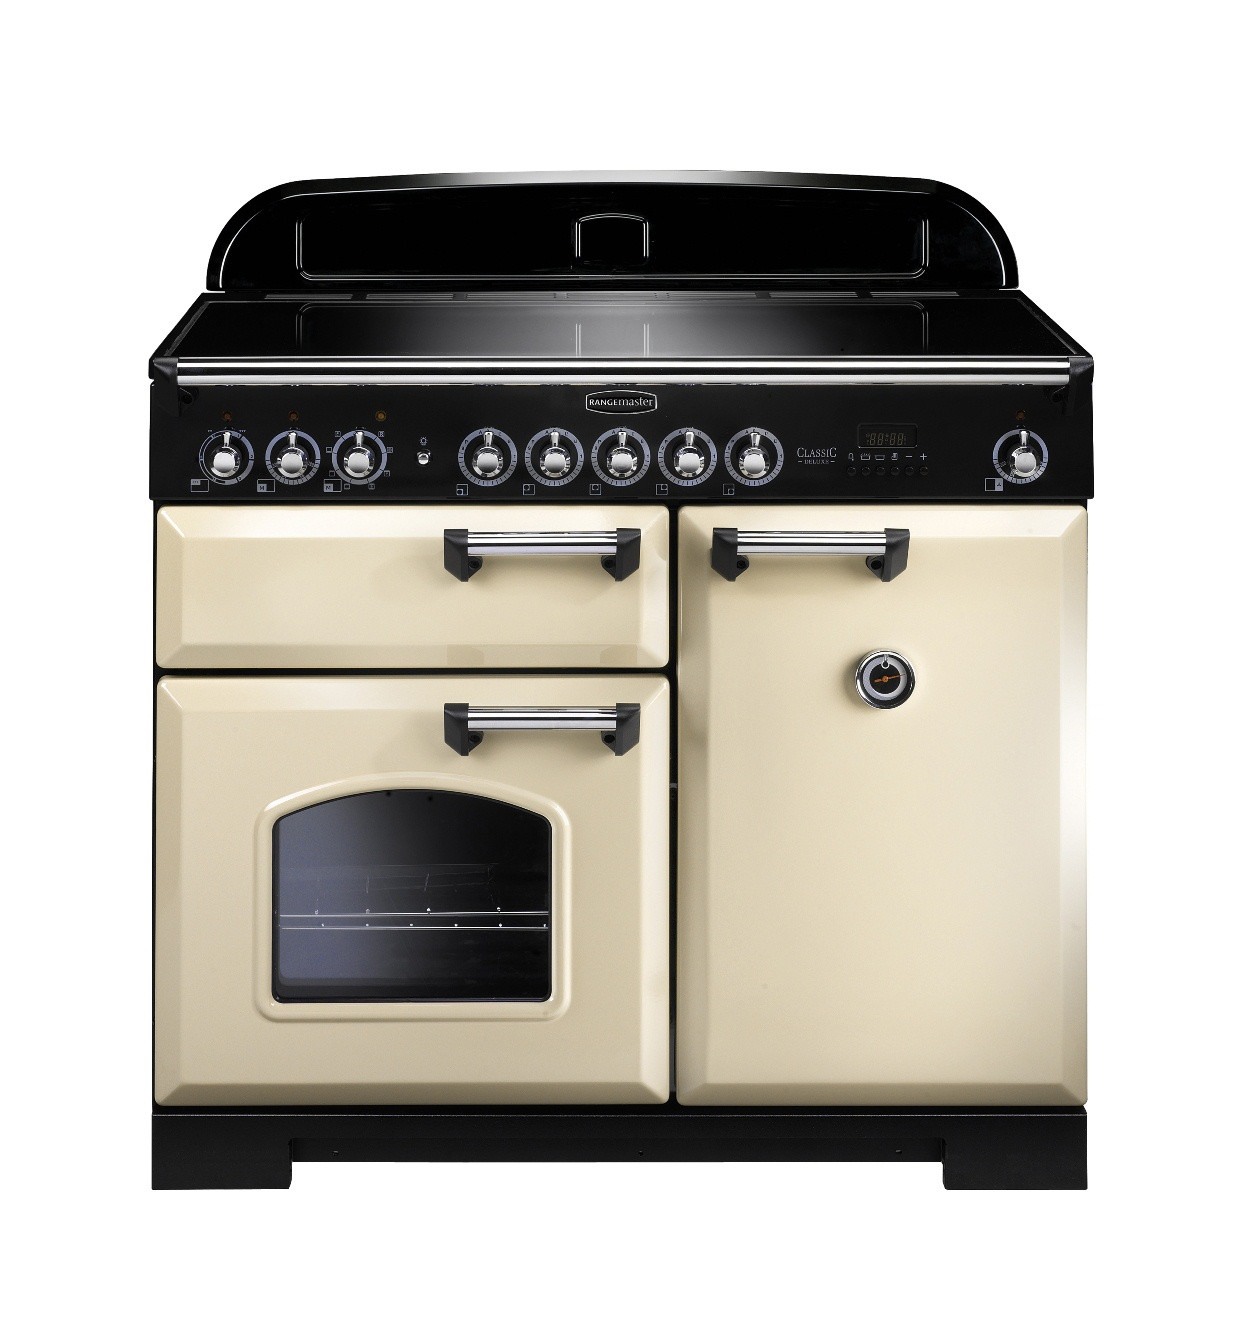 Rangemaster Classic Deluxe 100 Induction Cream/Chrome Trim Range Cooker CDL100EICR/C 95930